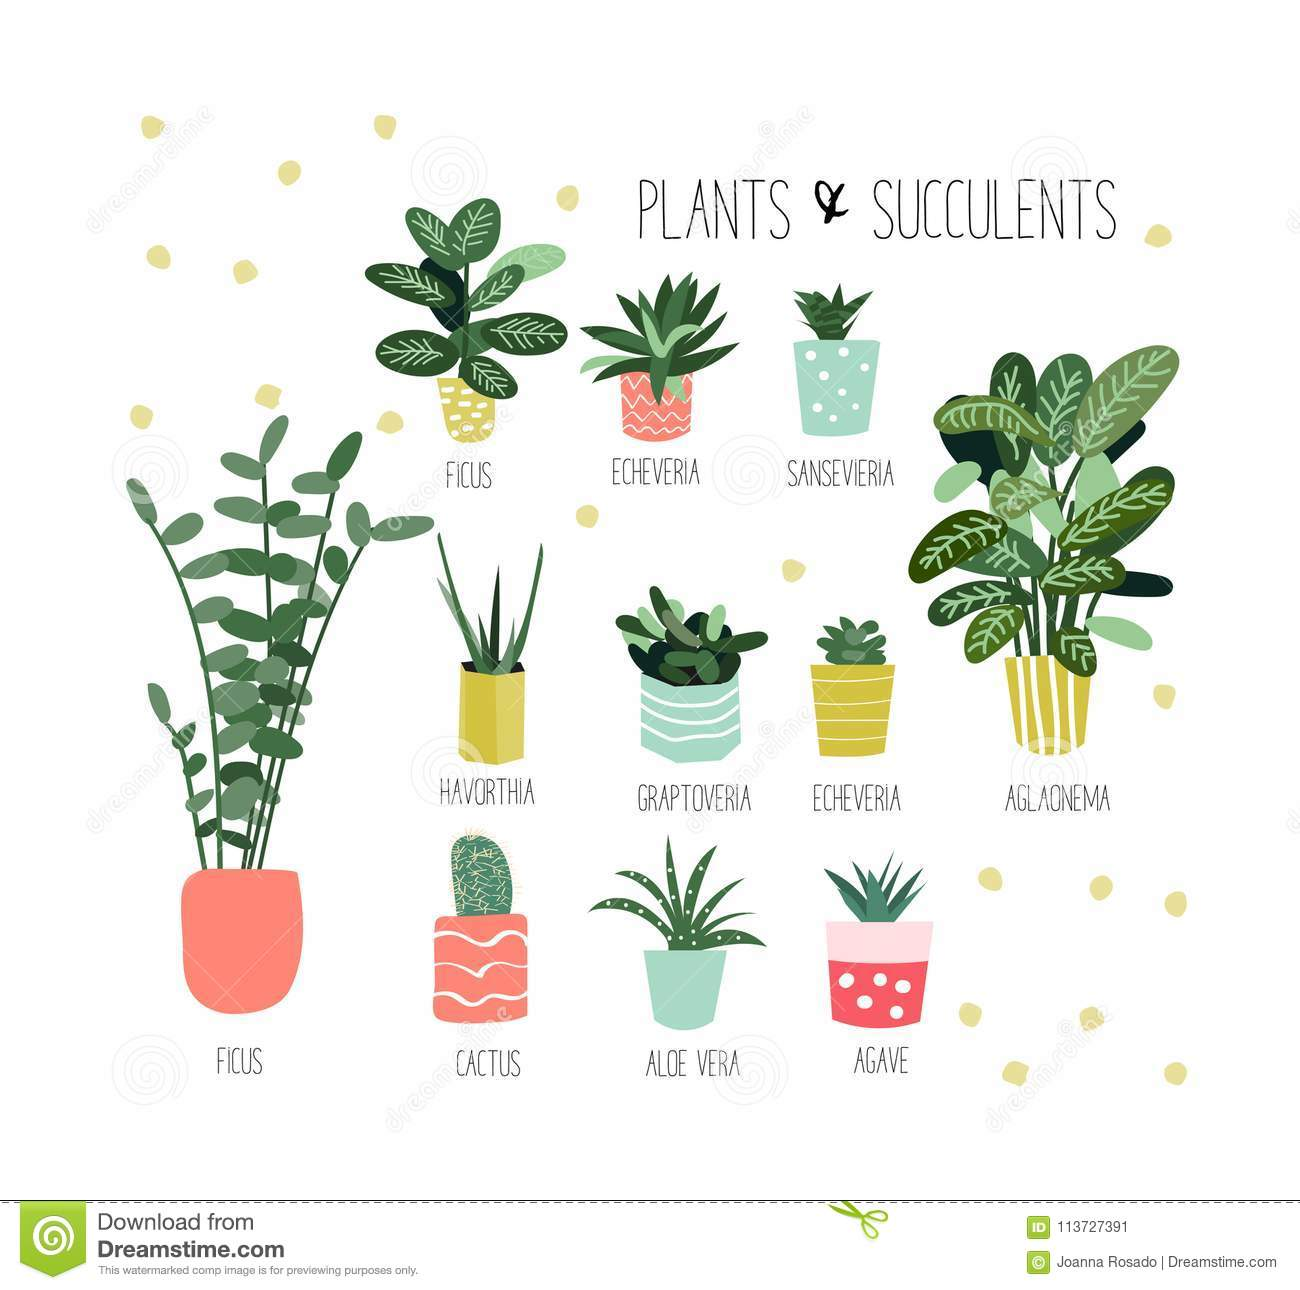 Potted Plants Collection. Succulents And House Plants. Hand ... on plant identification and names, food and names, vegetables and names, greenhouse and names, animals and names, ornamental grasses and names, herbs and names, beans and names, flowers and names, roses and names, cactus and names, pets and names, types of orchids and names, weeds and names, tools and names, wildflowers and names, seeds and names, daylilies and names, clothing and names, furniture and names,